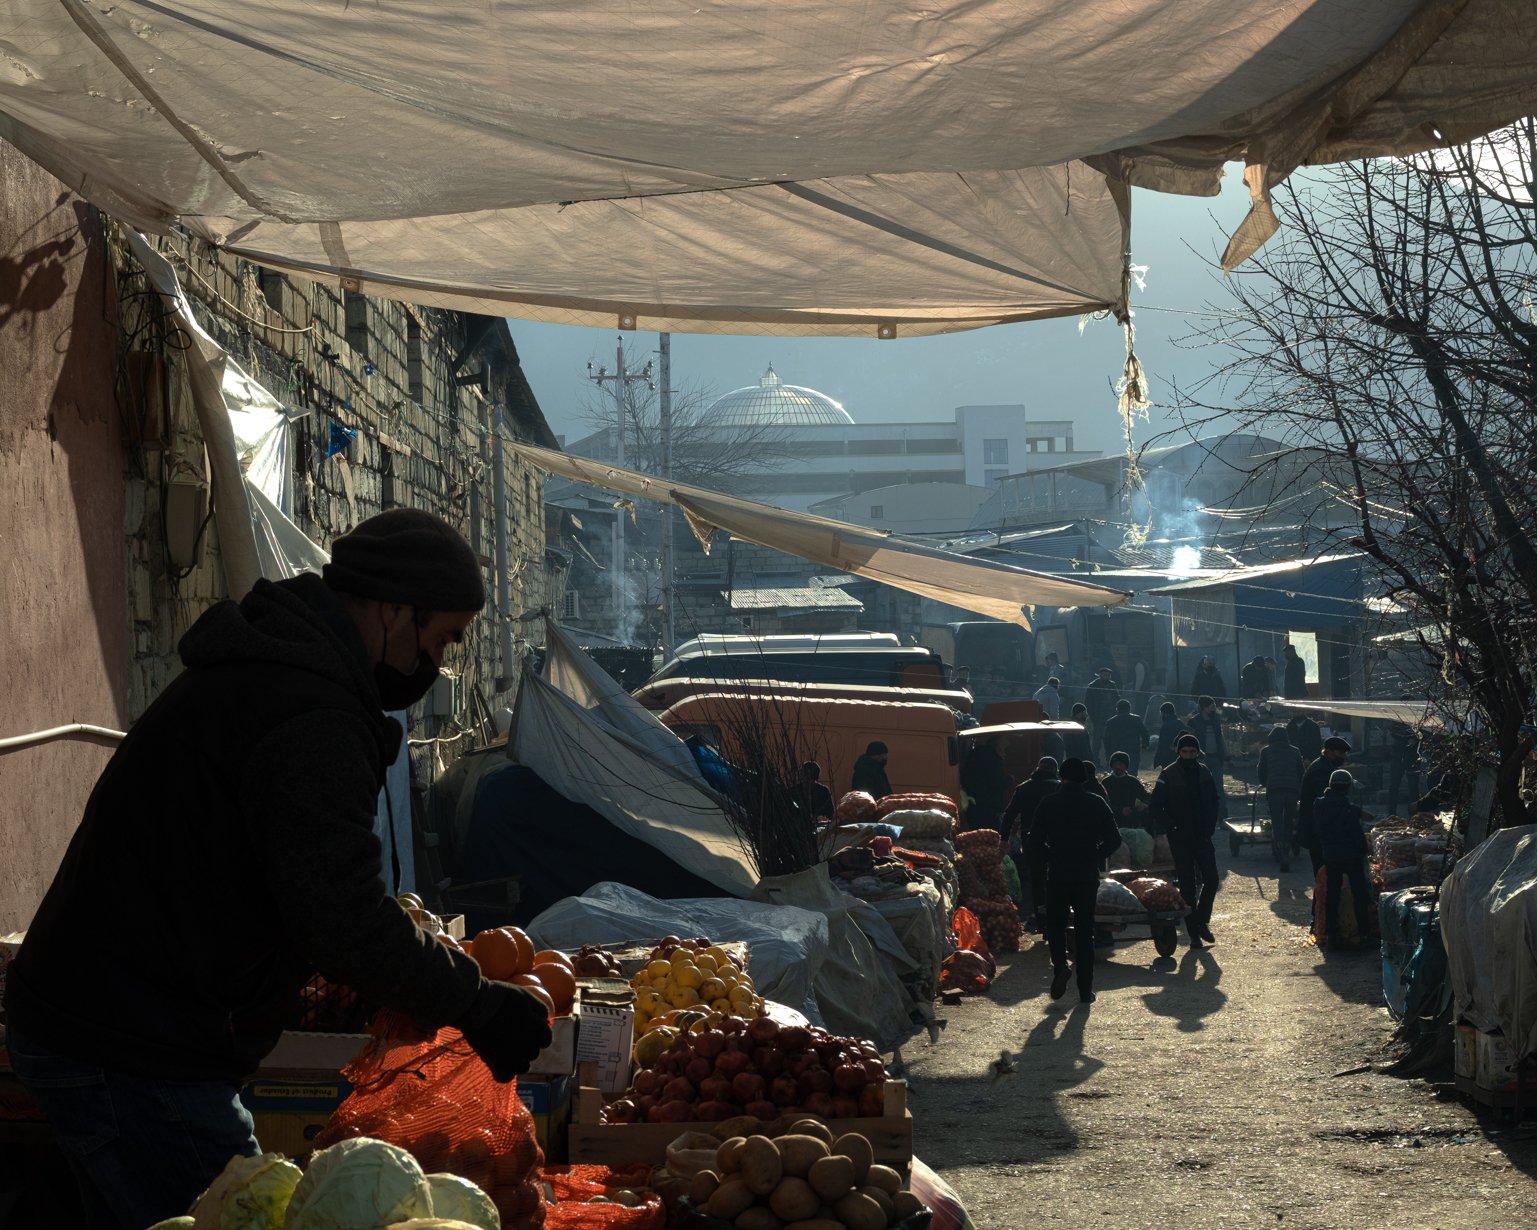 A seller prepares his stand early in the morning near the entrance to Taza Bazaar. Shaki, 2021